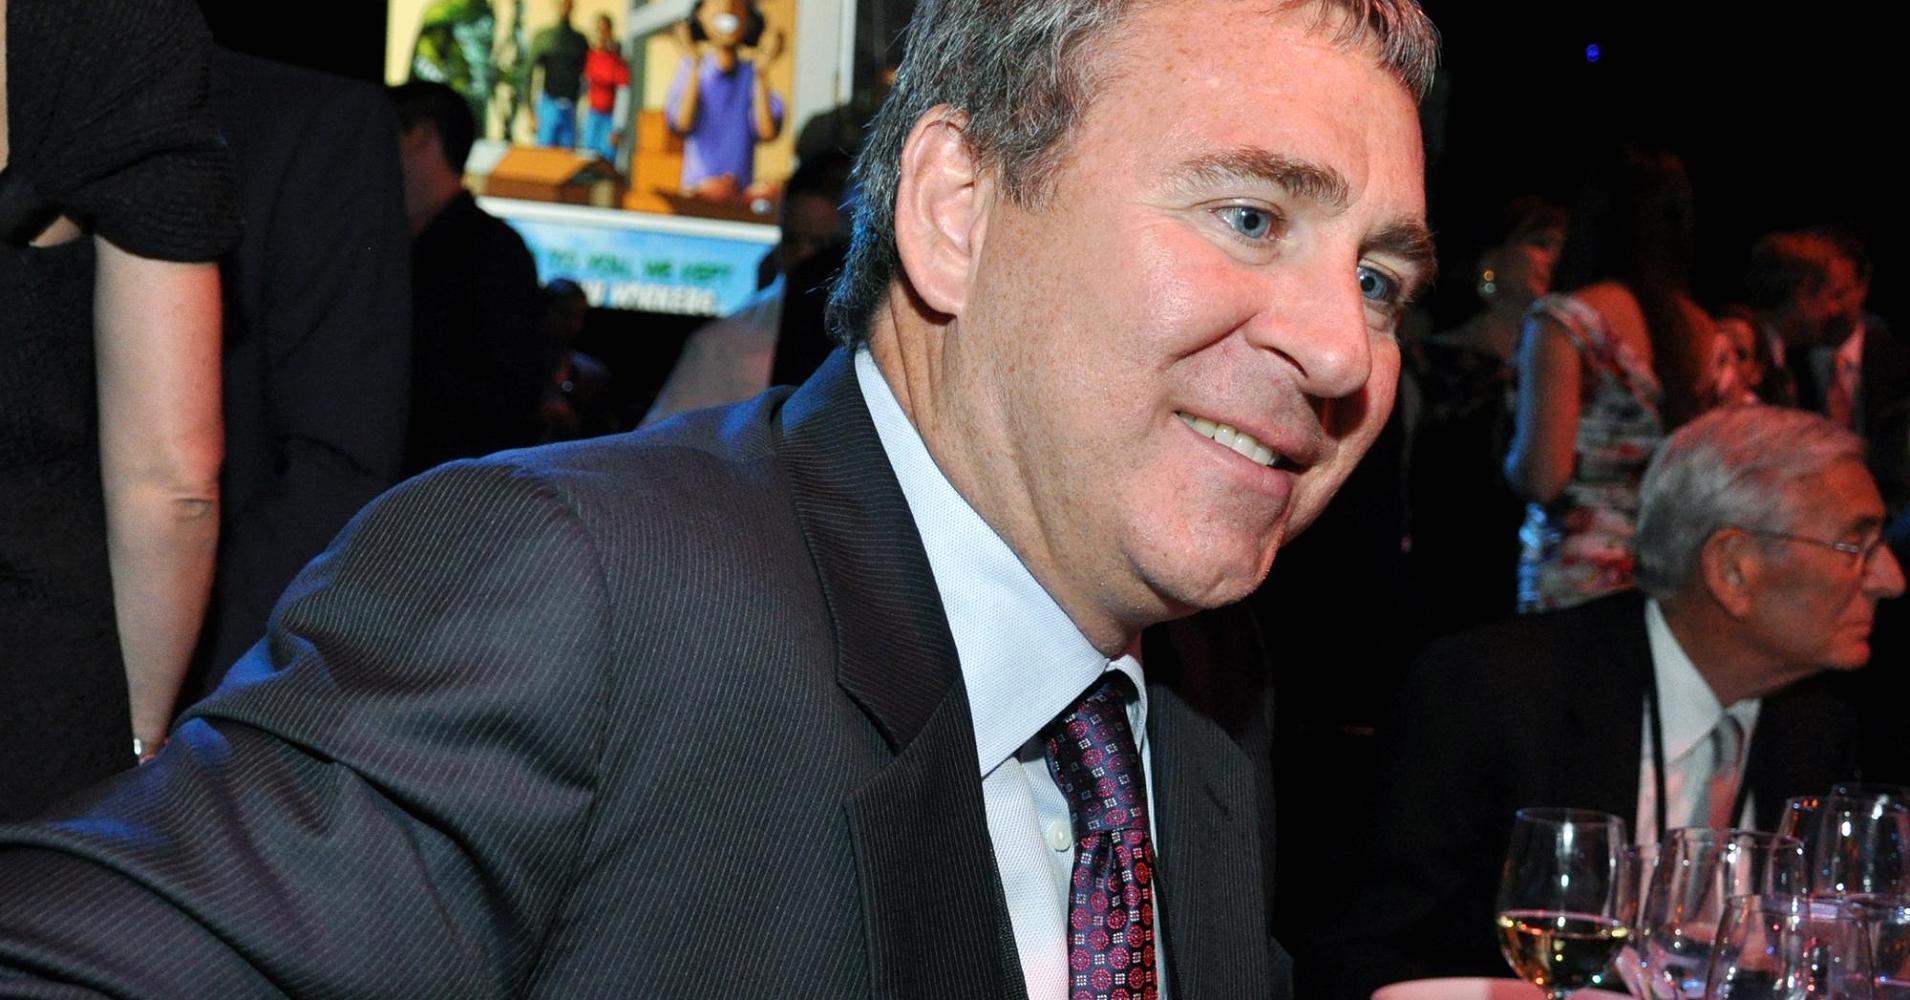 Ken Griffin goes on $290 million real estate spree